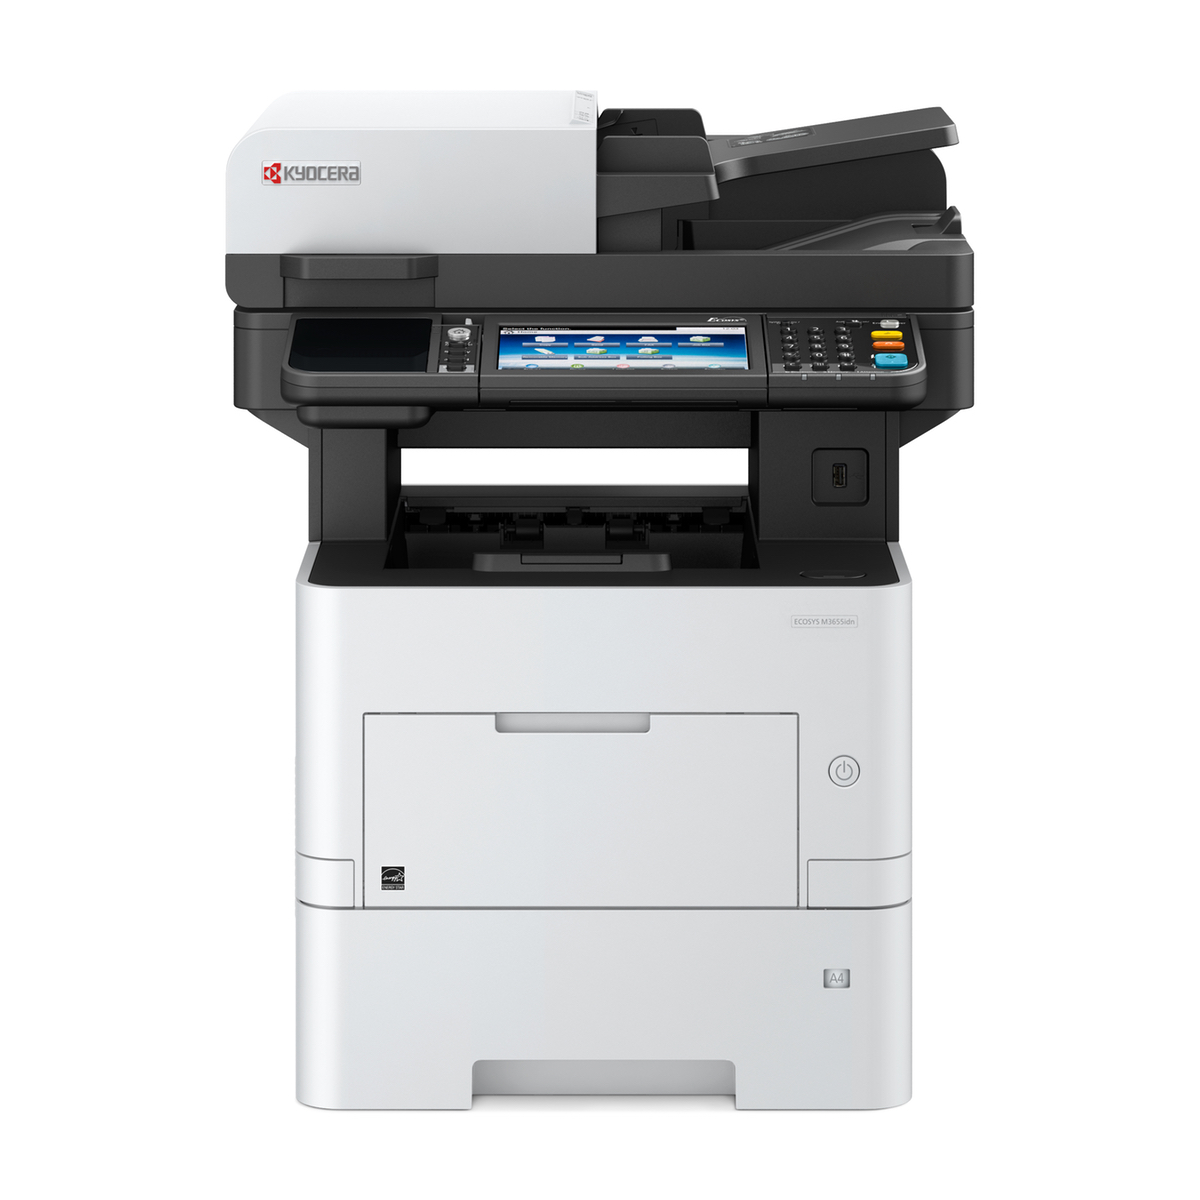 Kyocera Copiers:  The Kyocera ECOSYS M3655idn Copier